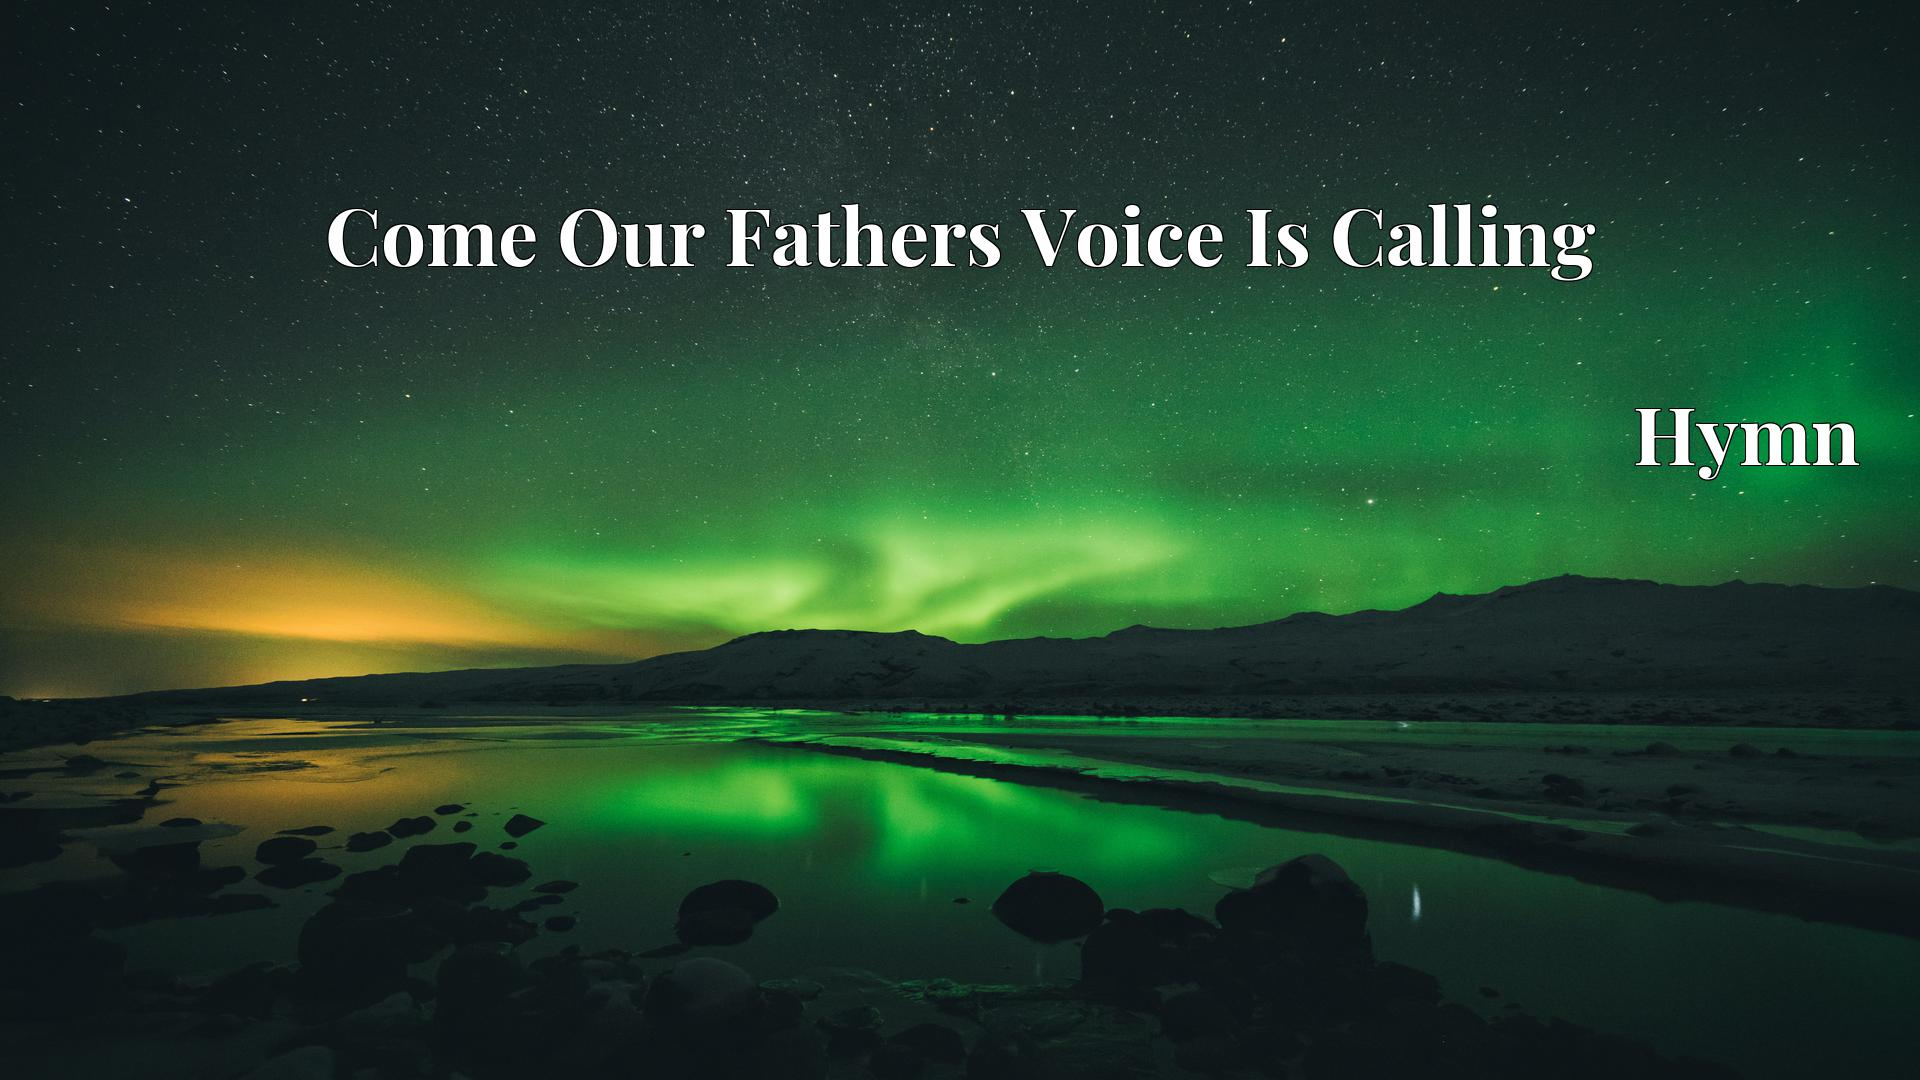 Come Our Fathers Voice Is Calling - Hymn